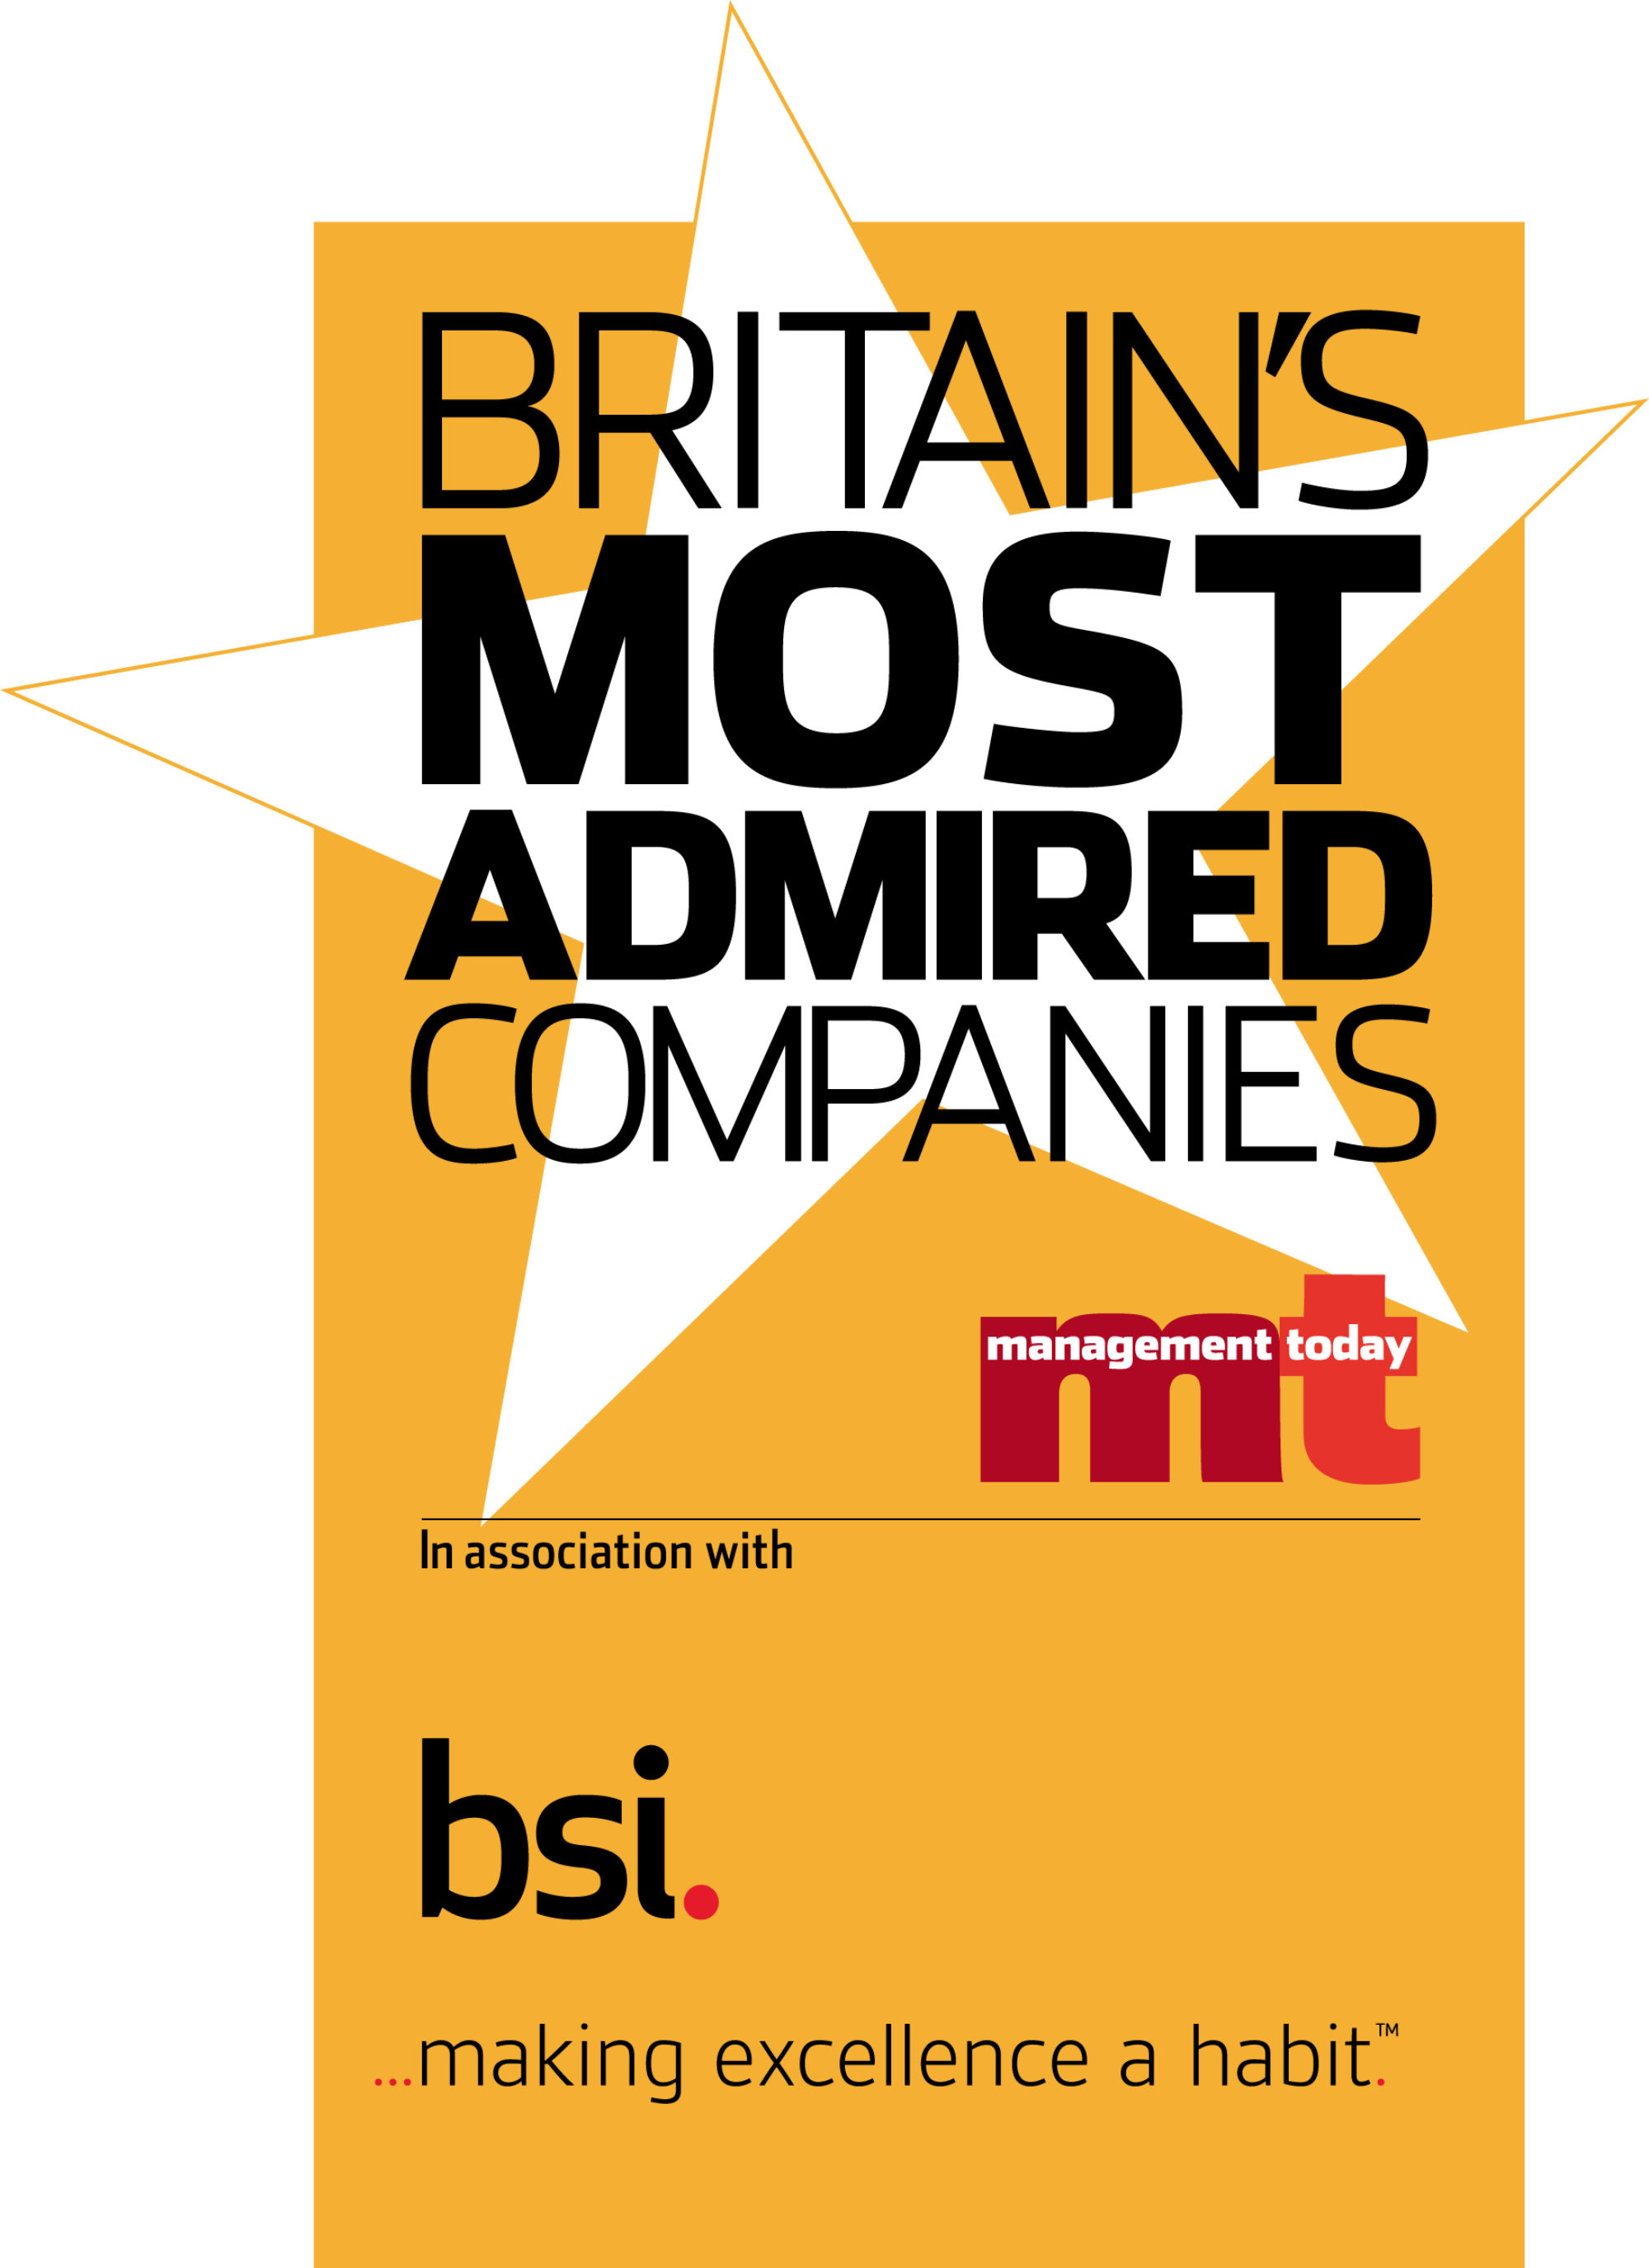 Derwent London 7th in Britain's Most Admired Companies 2012